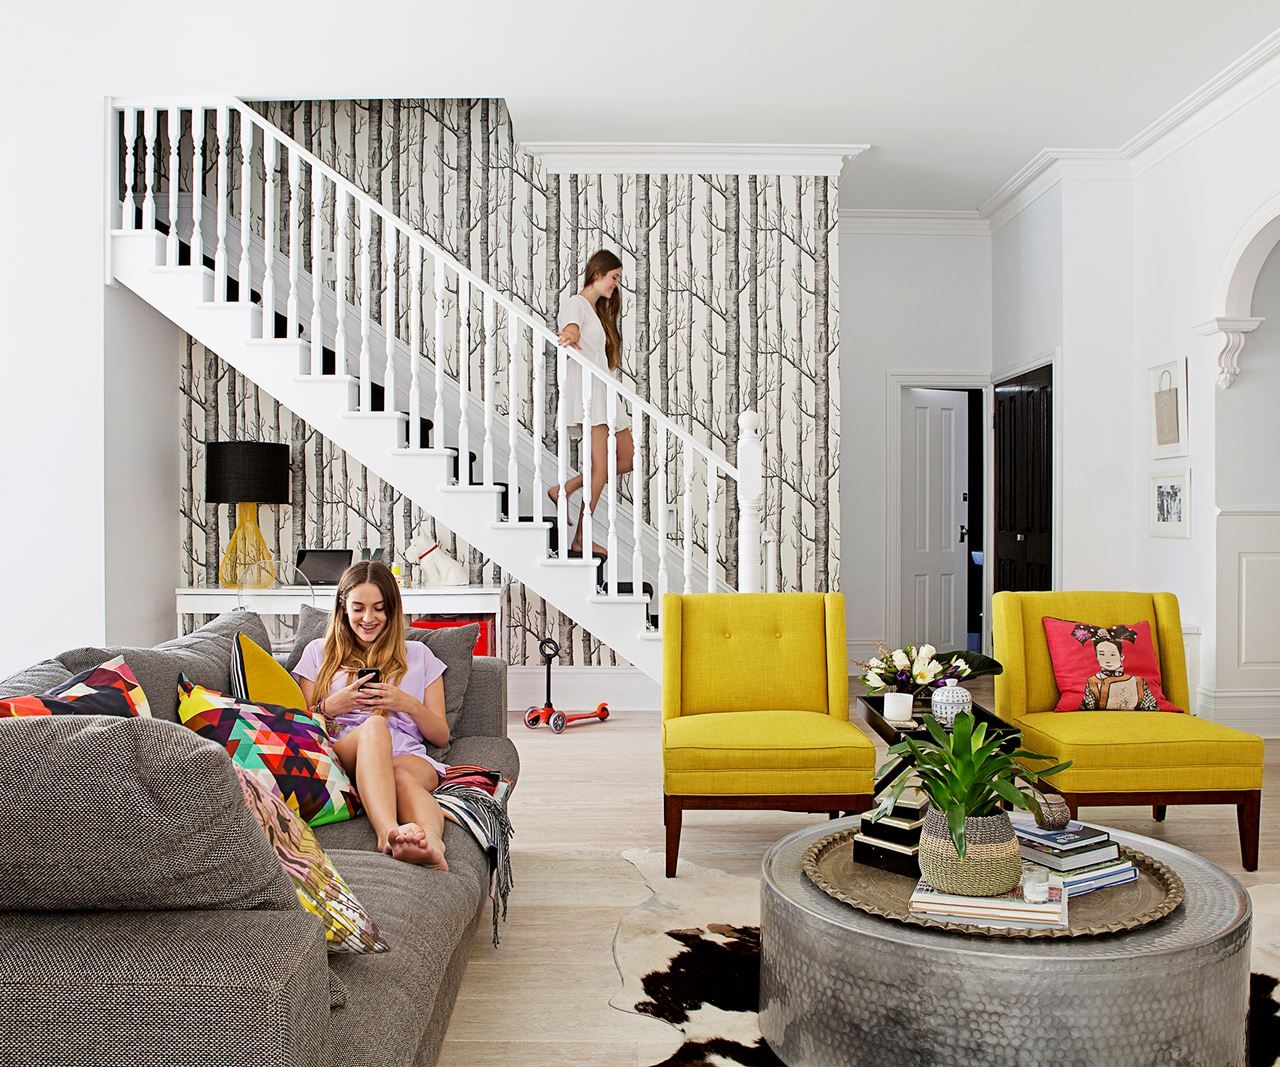 Gallery Kirk and Suzanne's Perth cottage renovation